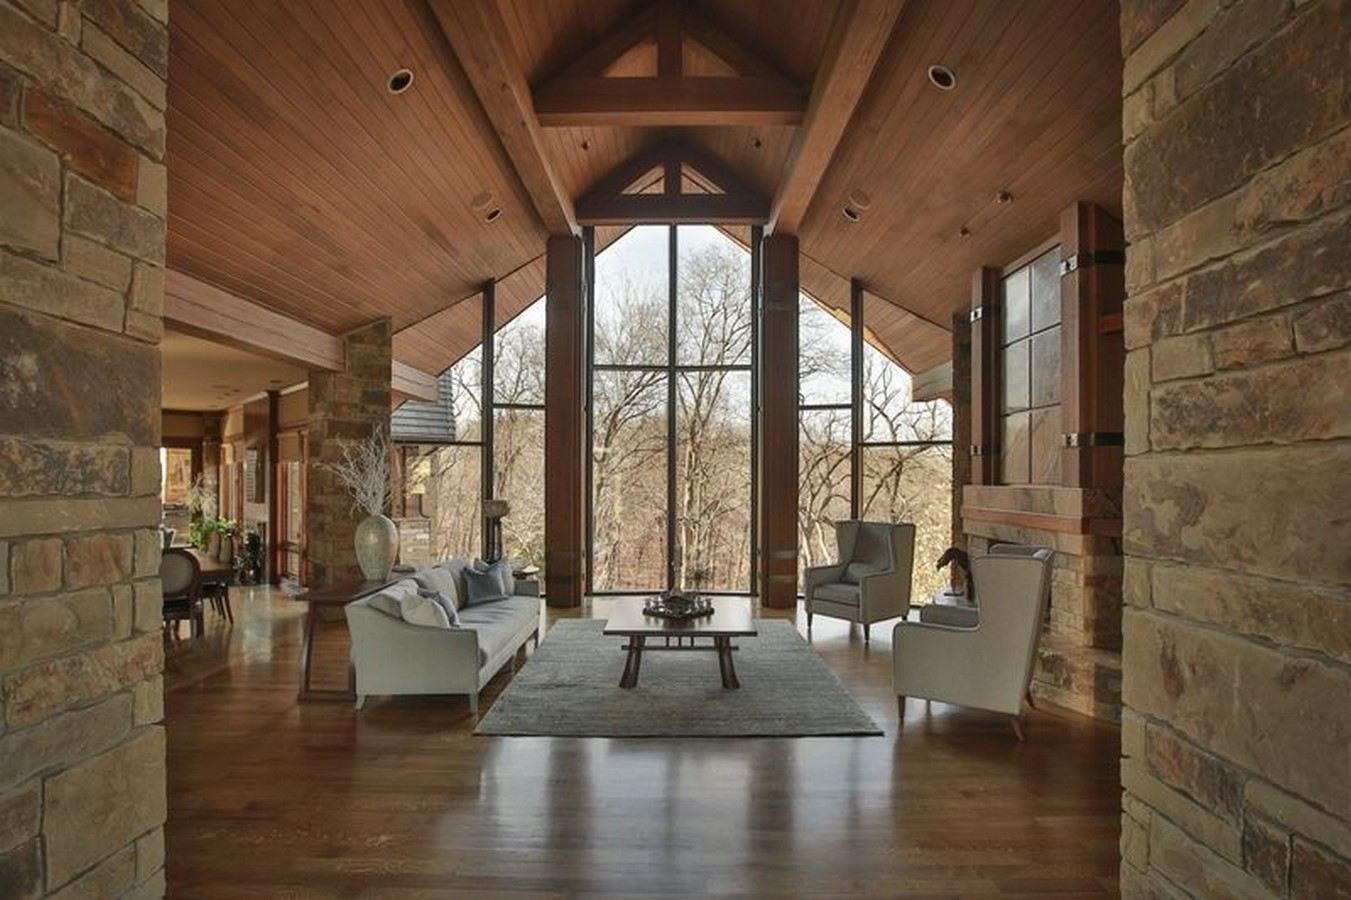 30 Examples of Rustic interiors for living rooms - Sheet16